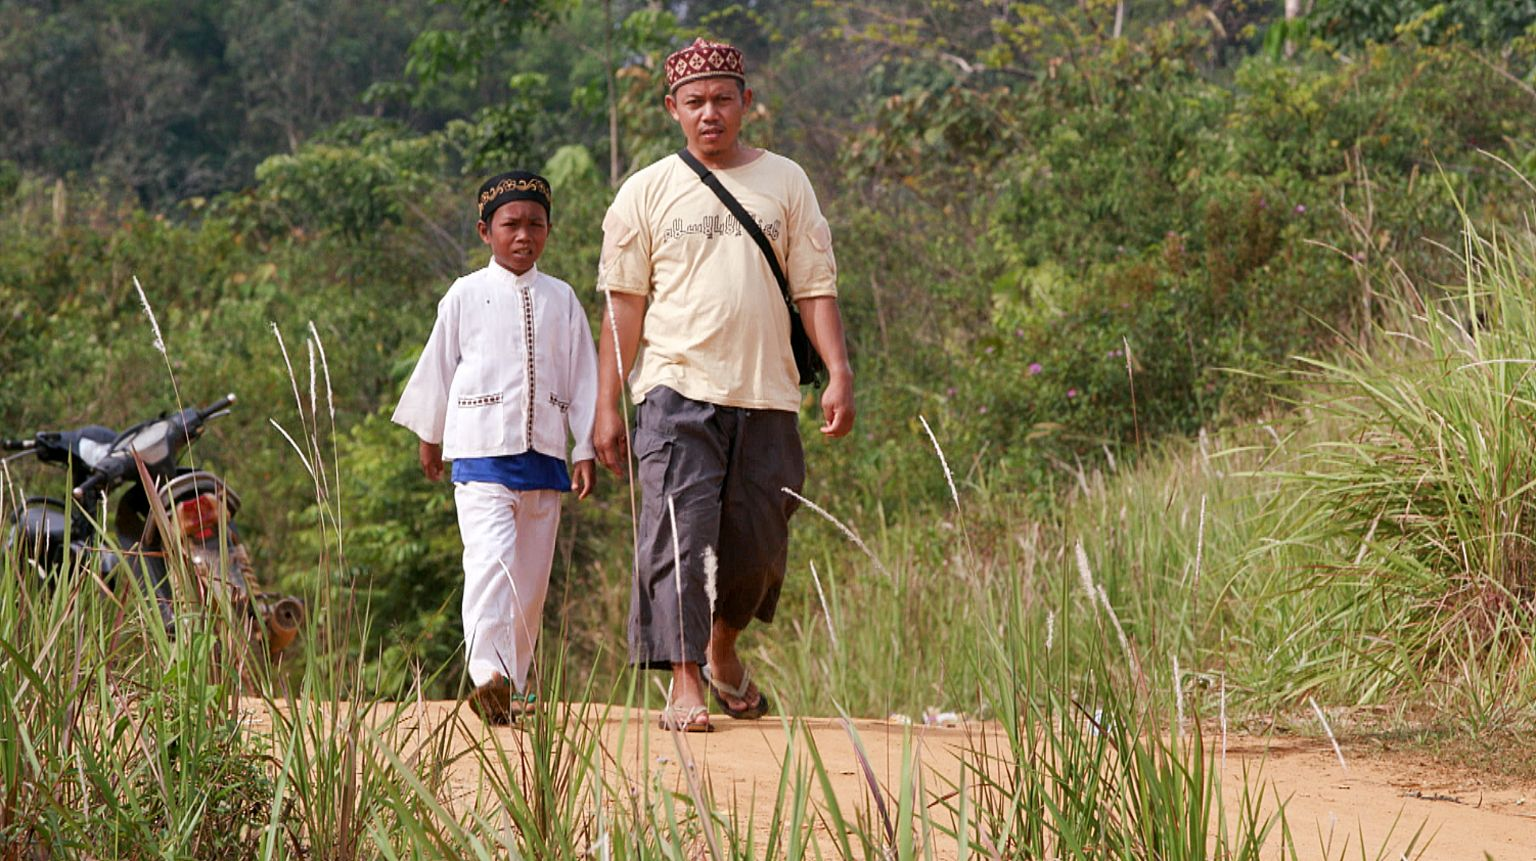 Missionary Ustad Reyhan (right) with a young Muslim boy